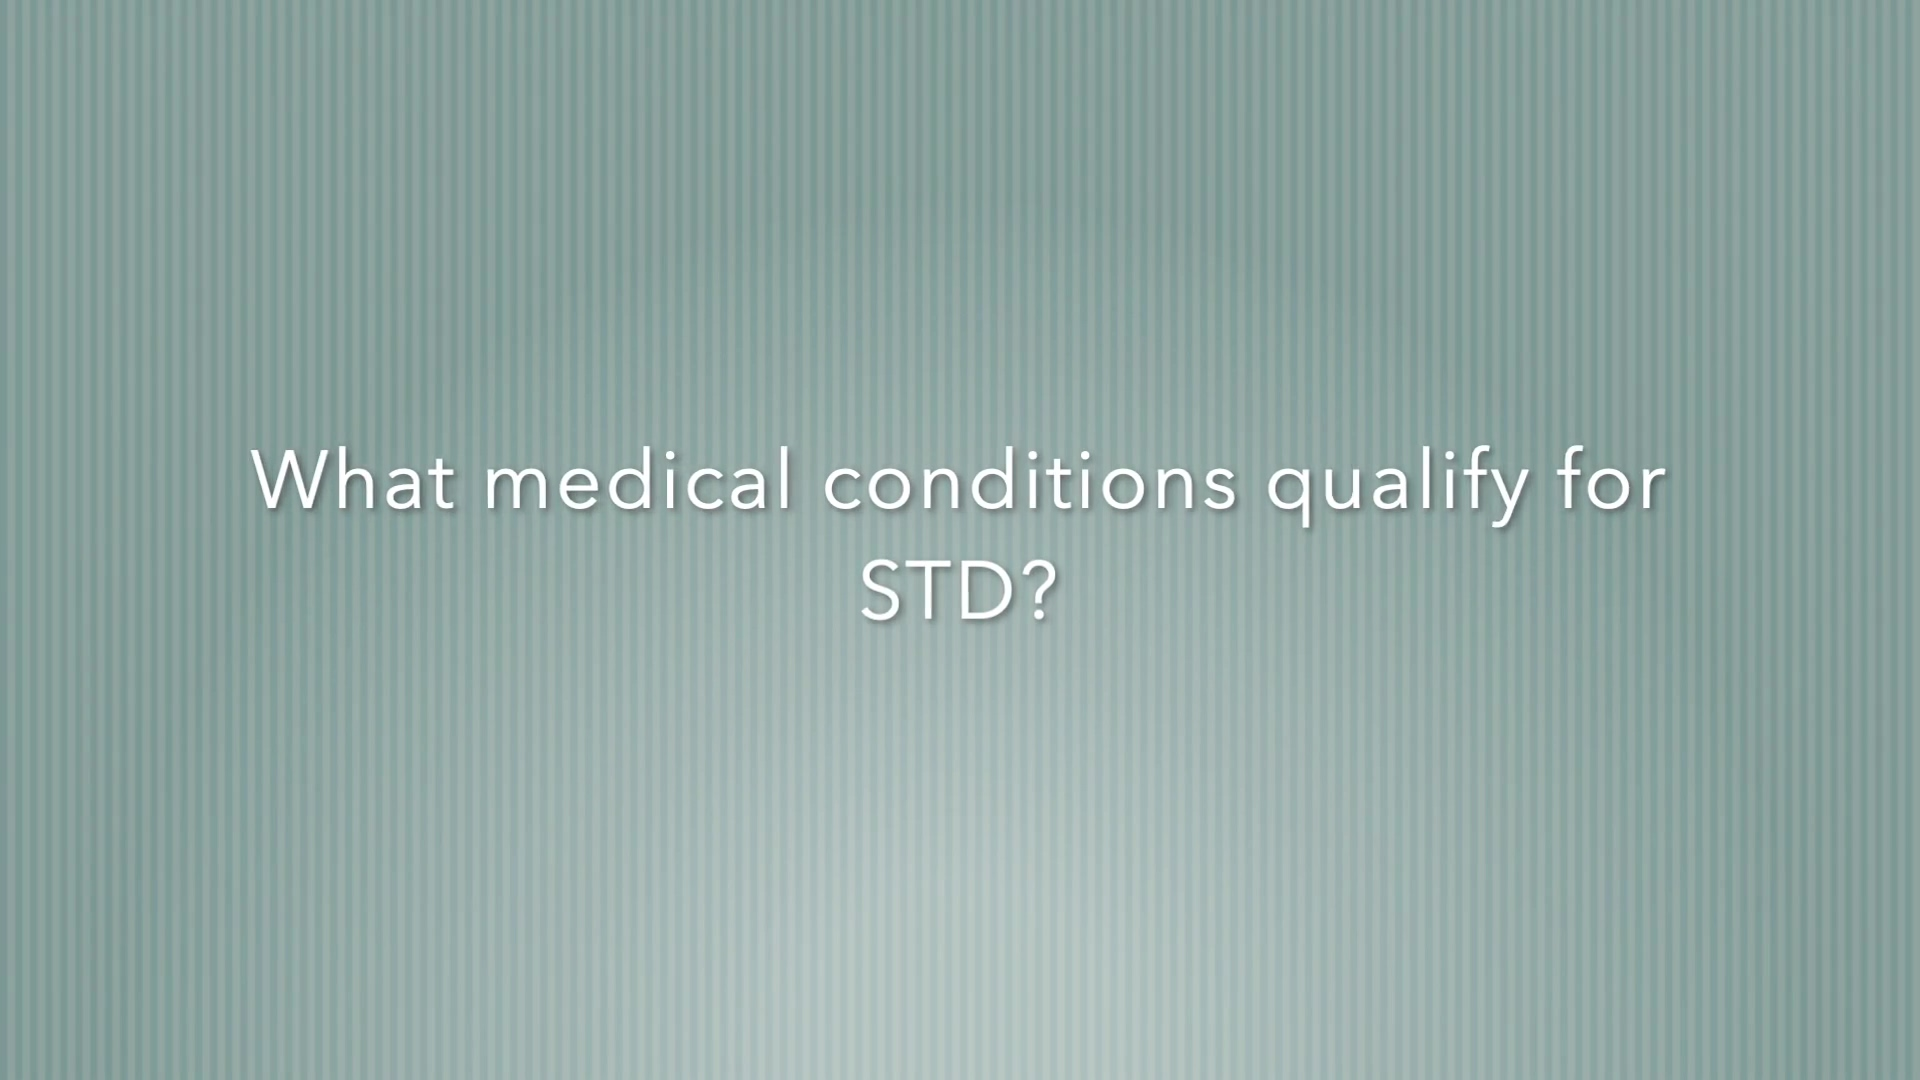 What medical conditions qualify for STD?